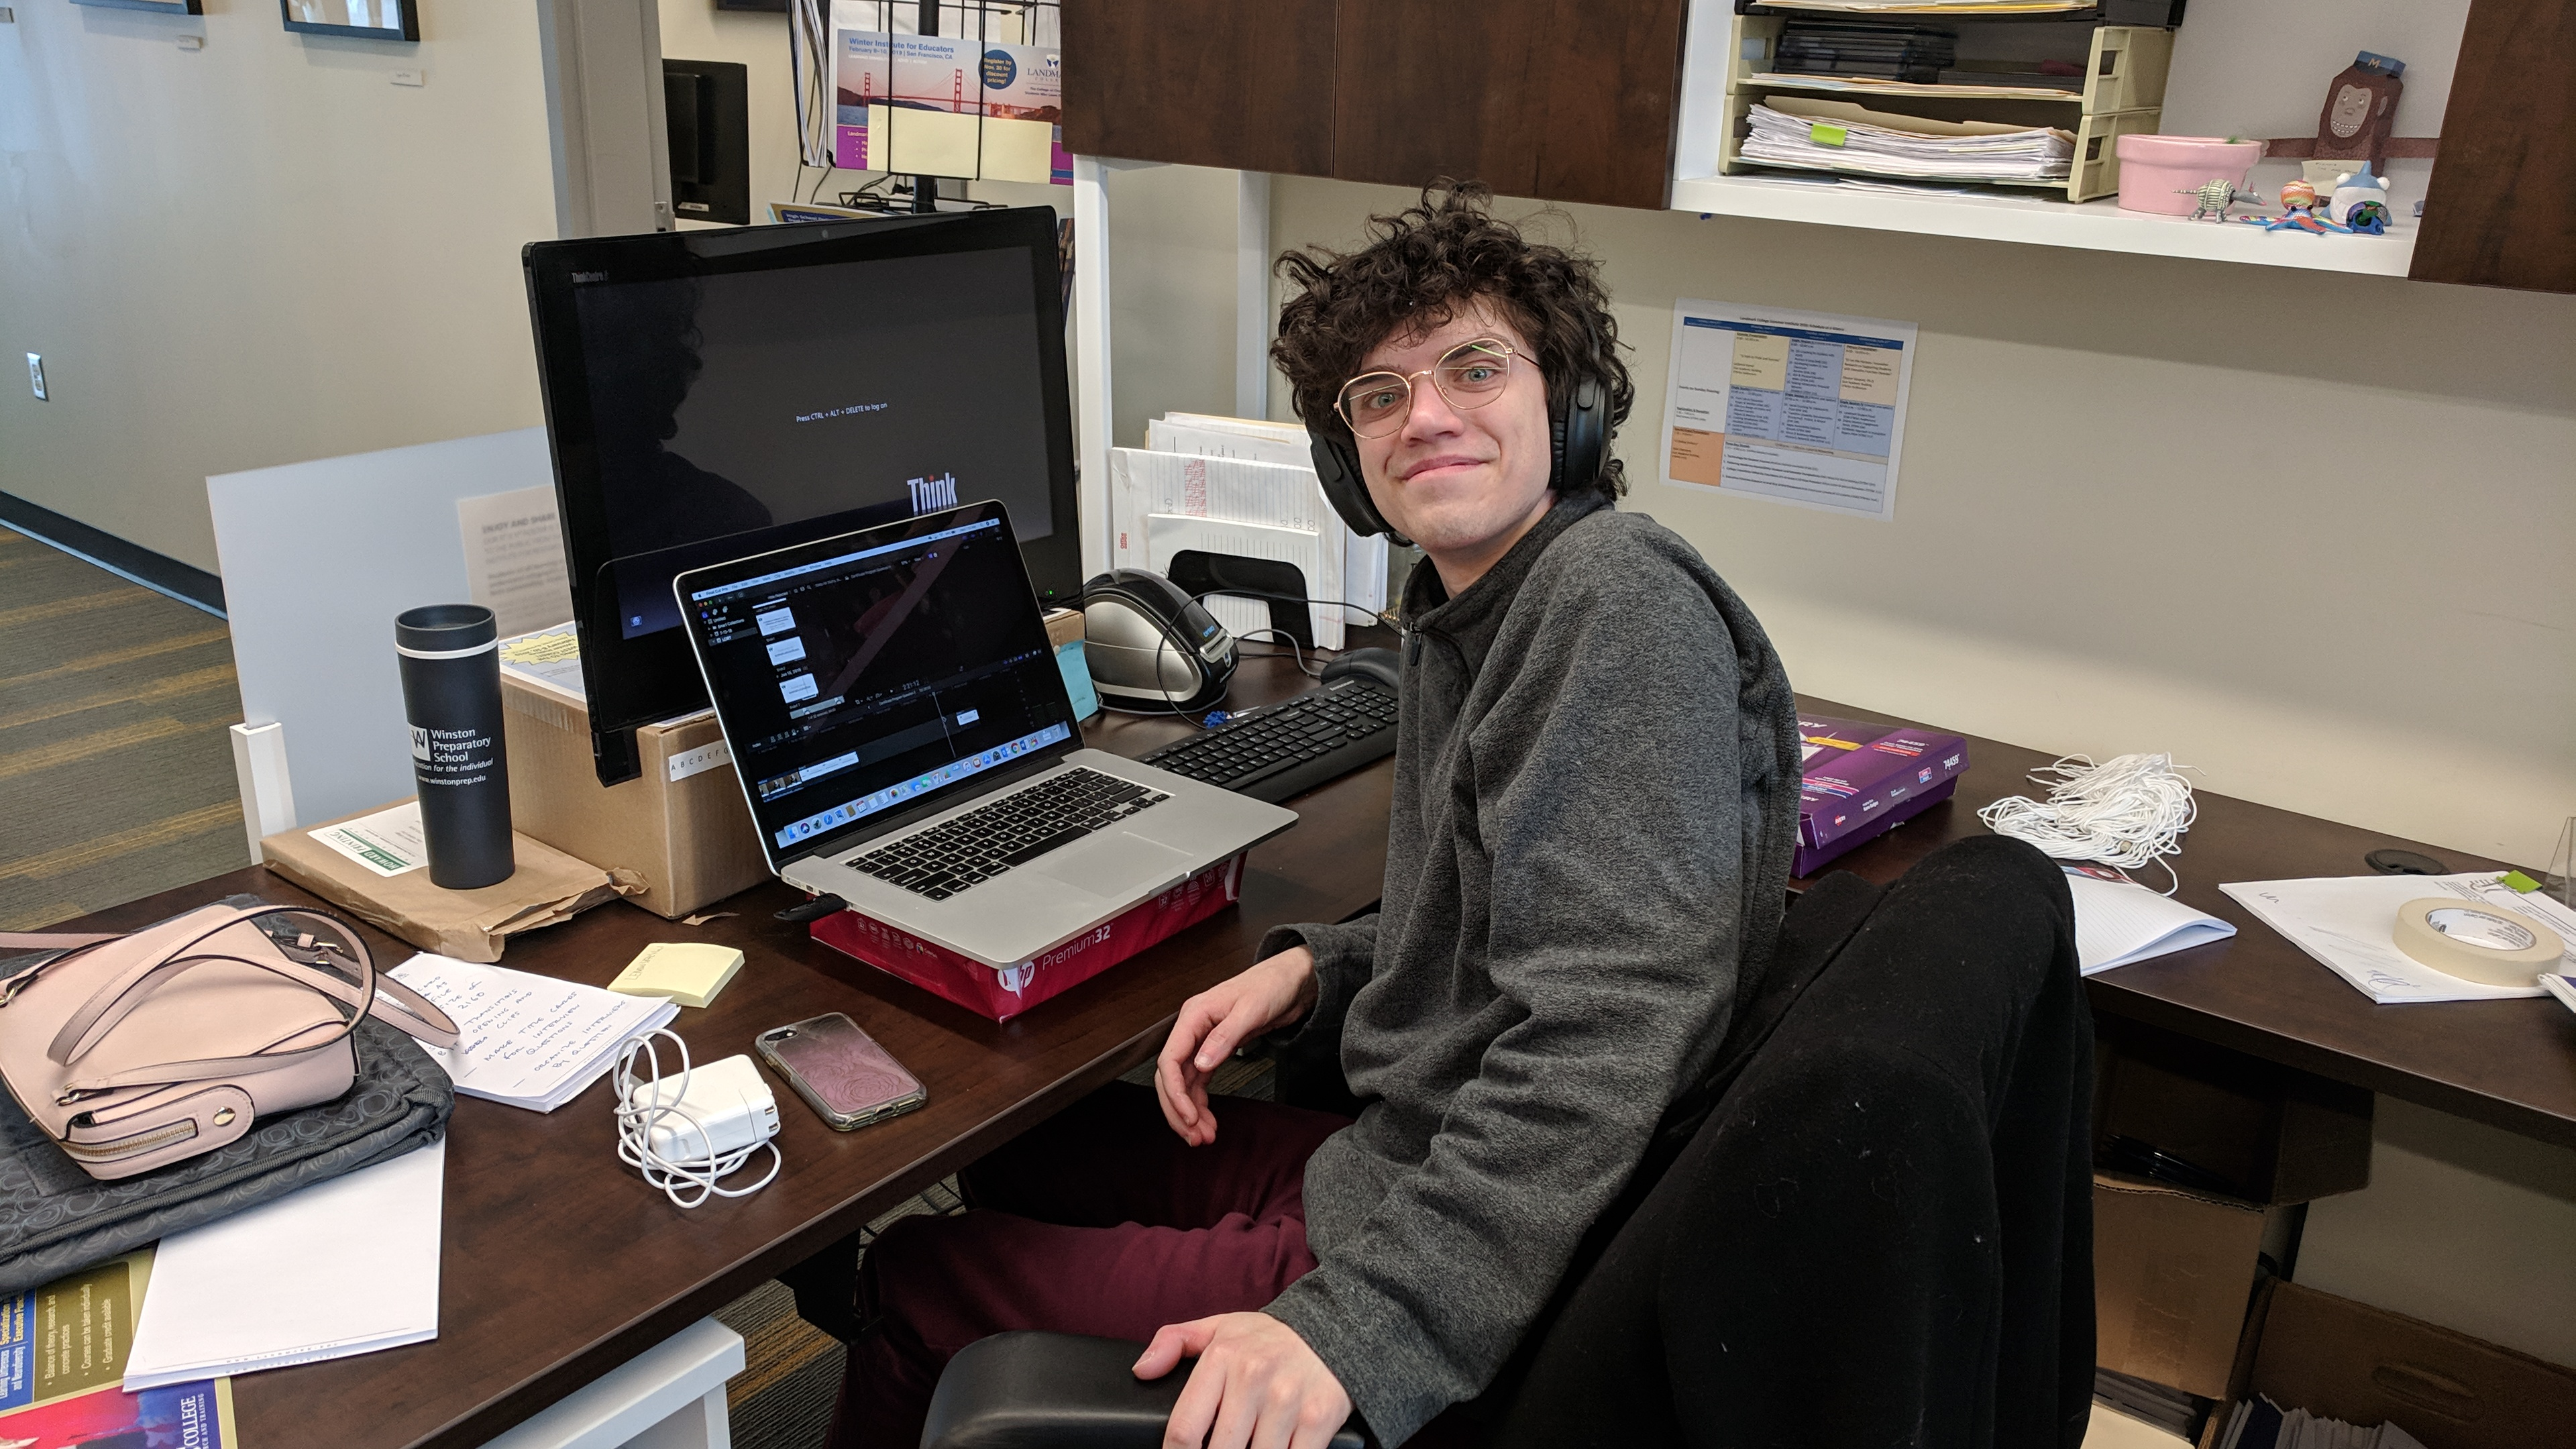 Student working at computer as part of Employment Readiness Experience